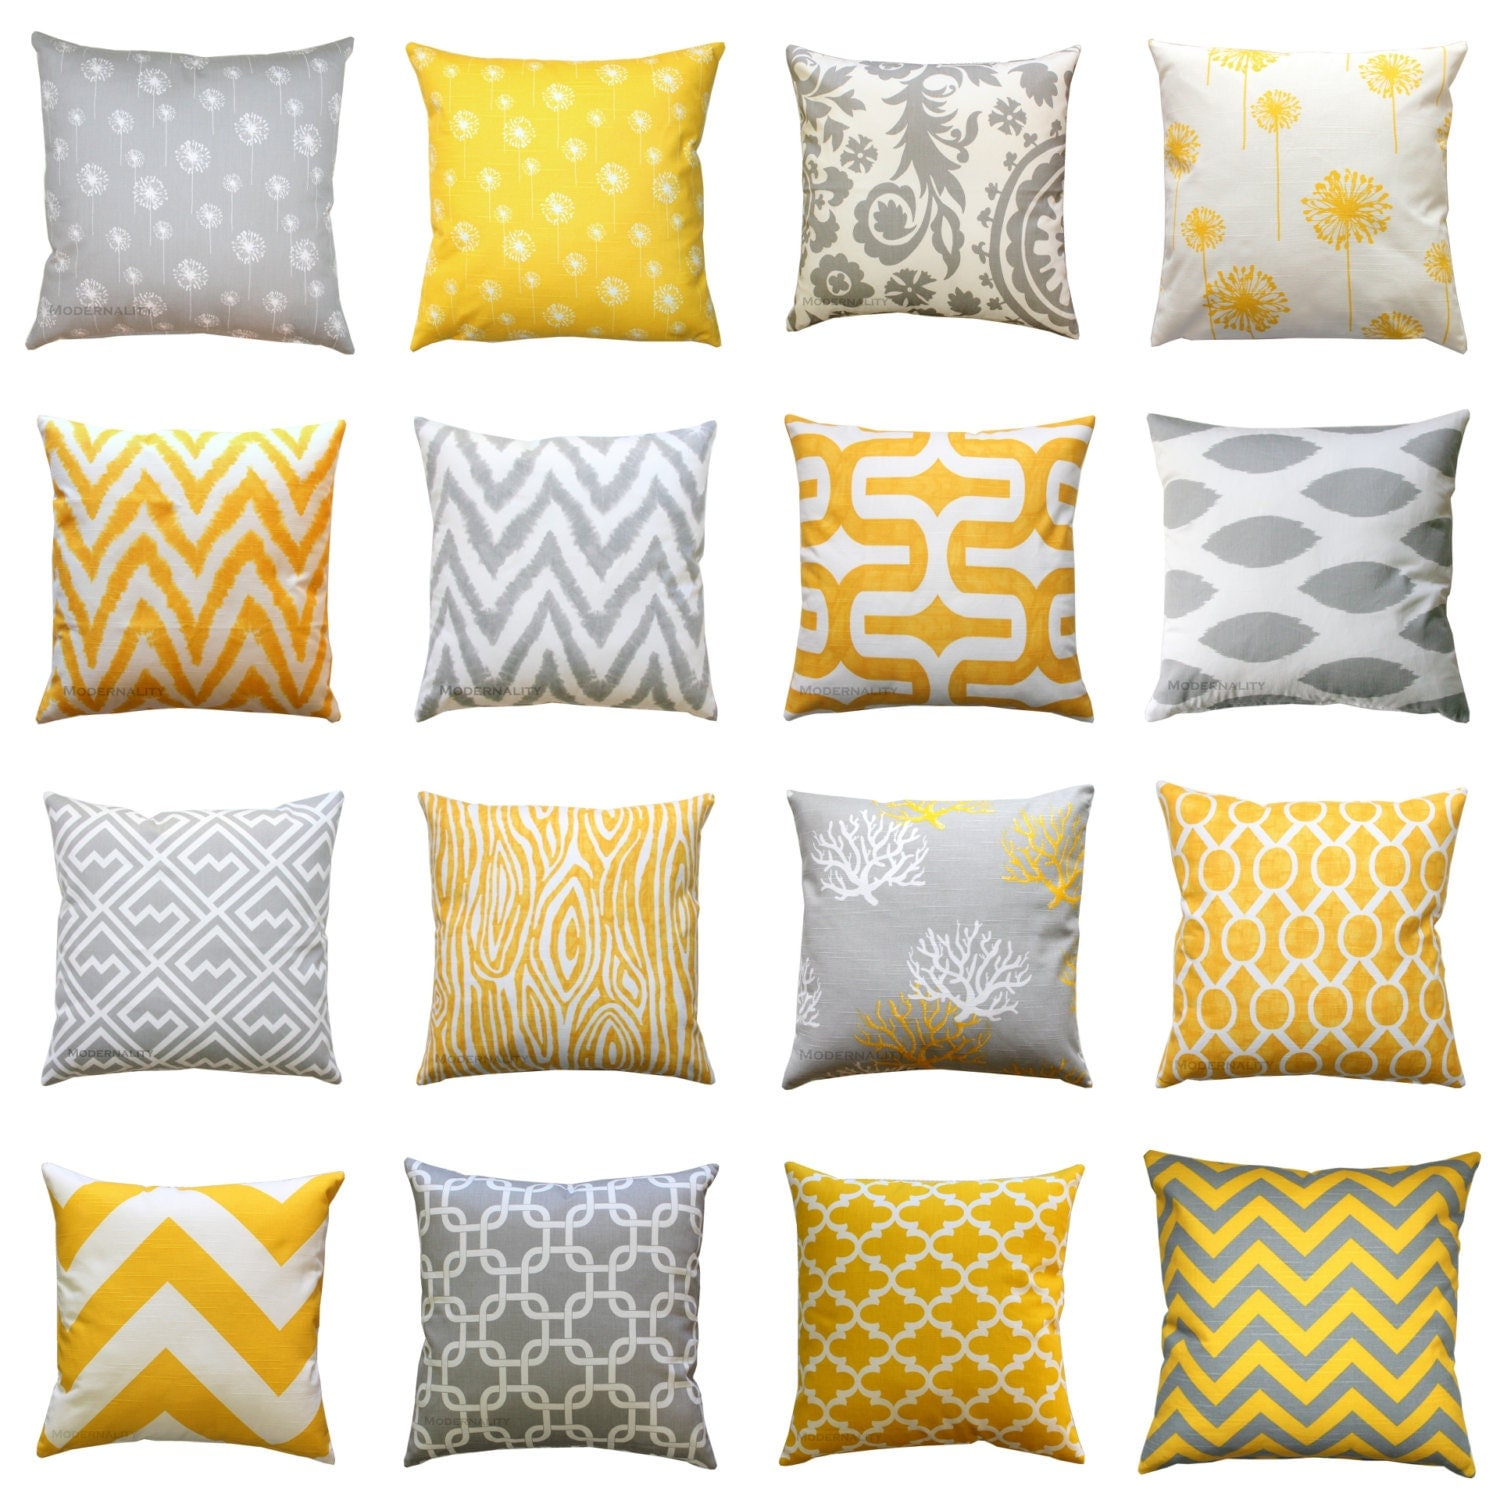 clearance throw pillow cover yellow and grey pillows mix. Black Bedroom Furniture Sets. Home Design Ideas